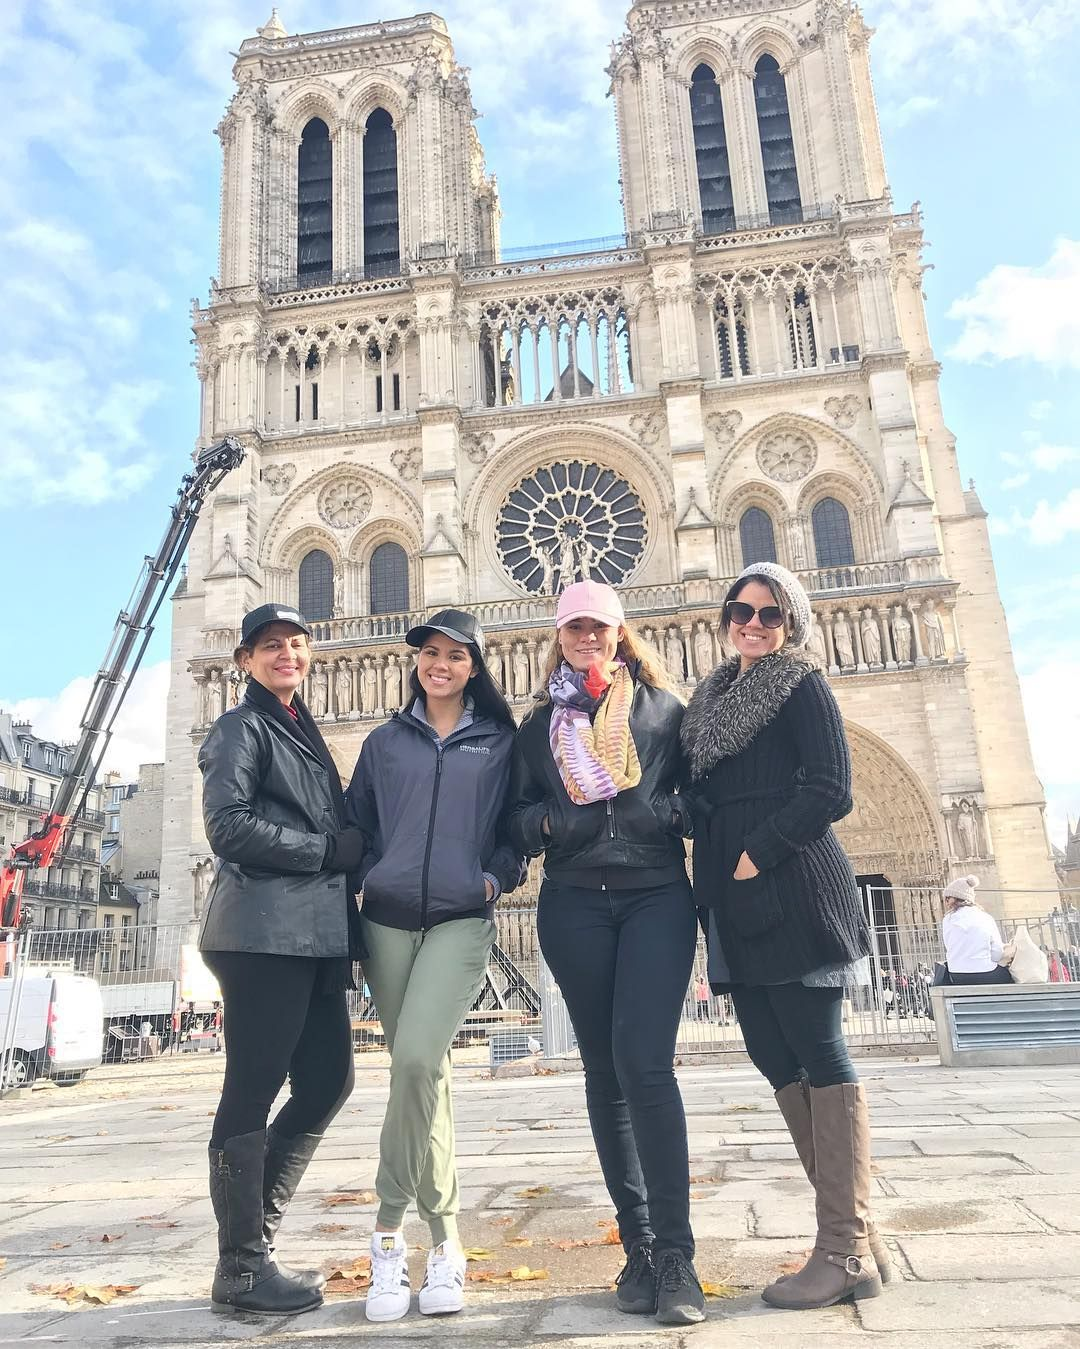 With The Women I Look Up To Paris France Paris Photo Idea France Photo Idea Winter Outfit Fall Outfit Europe Outfit Travel Europe Outfits Paris Photos